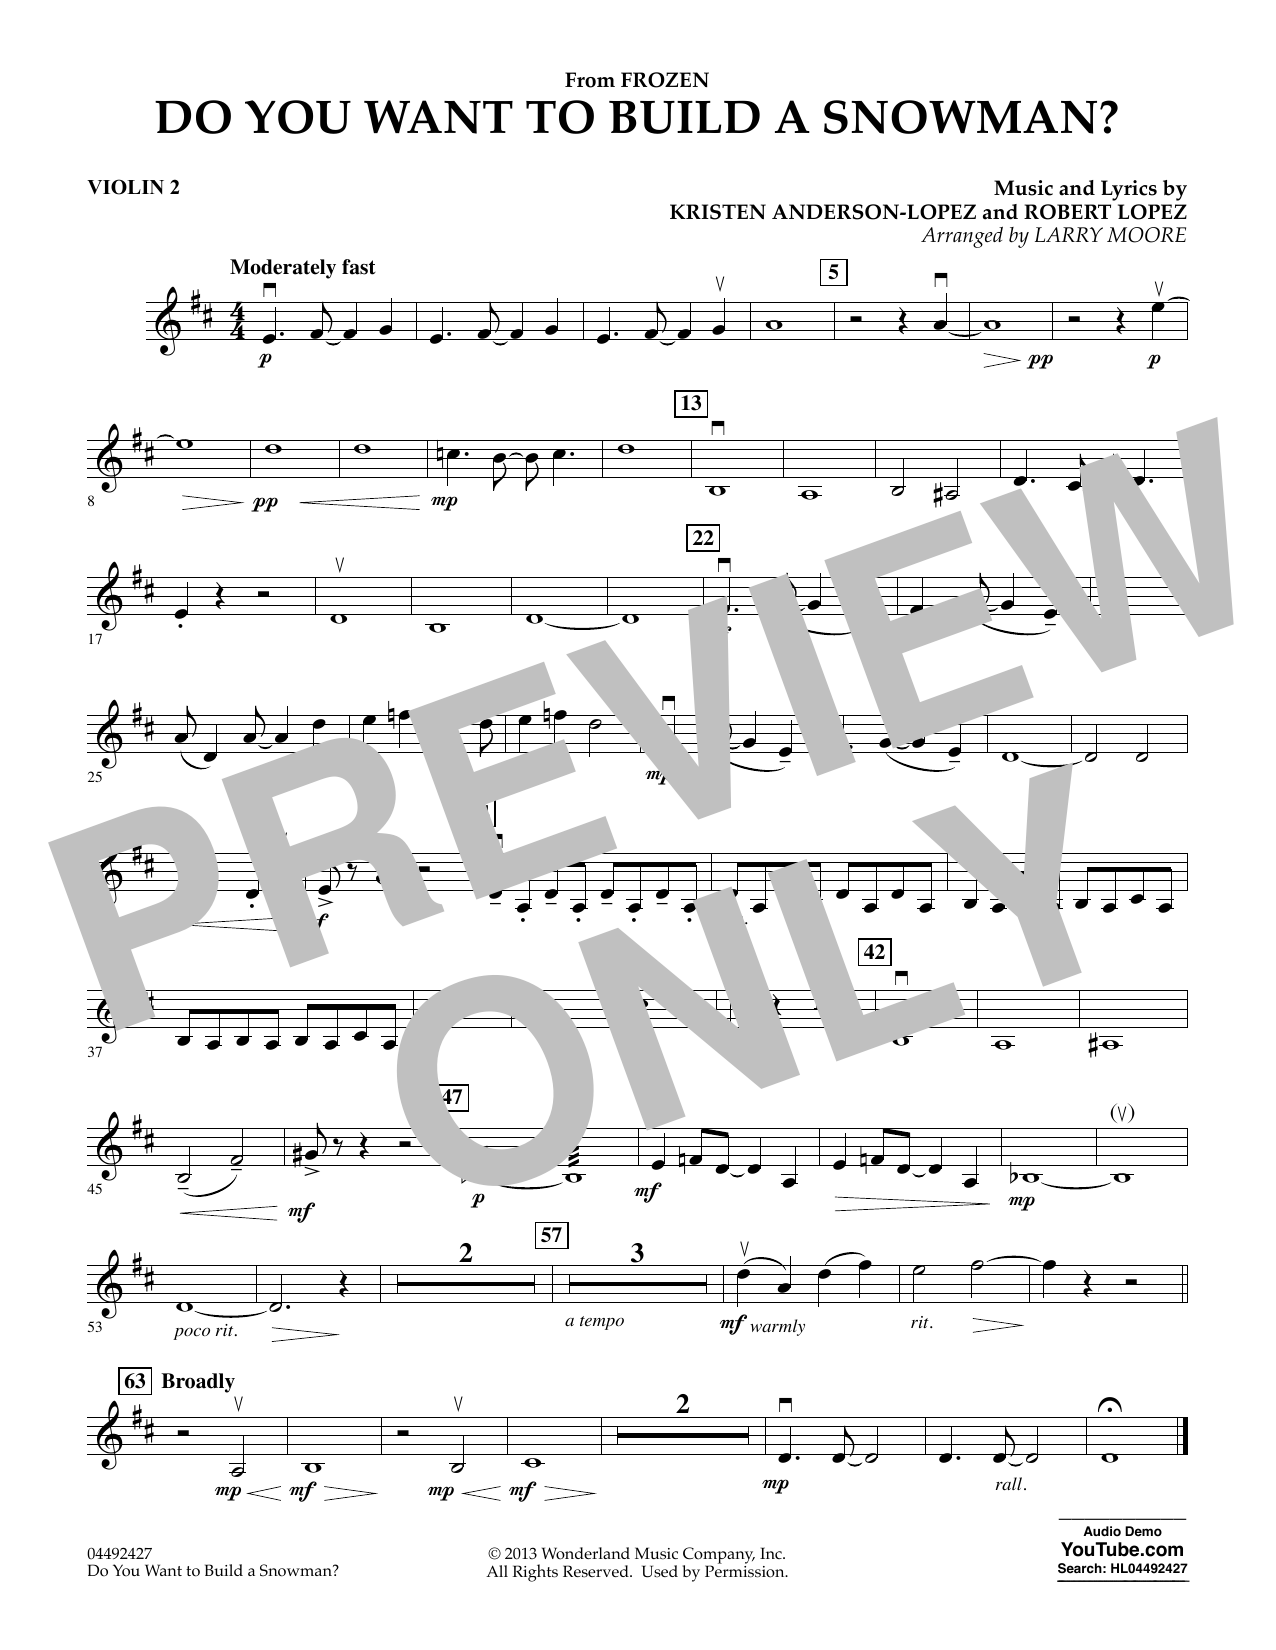 Do You Want To Build A Snowman (from Frozen) (arr. Larry Moore) - Violin 2 (Orchestra)